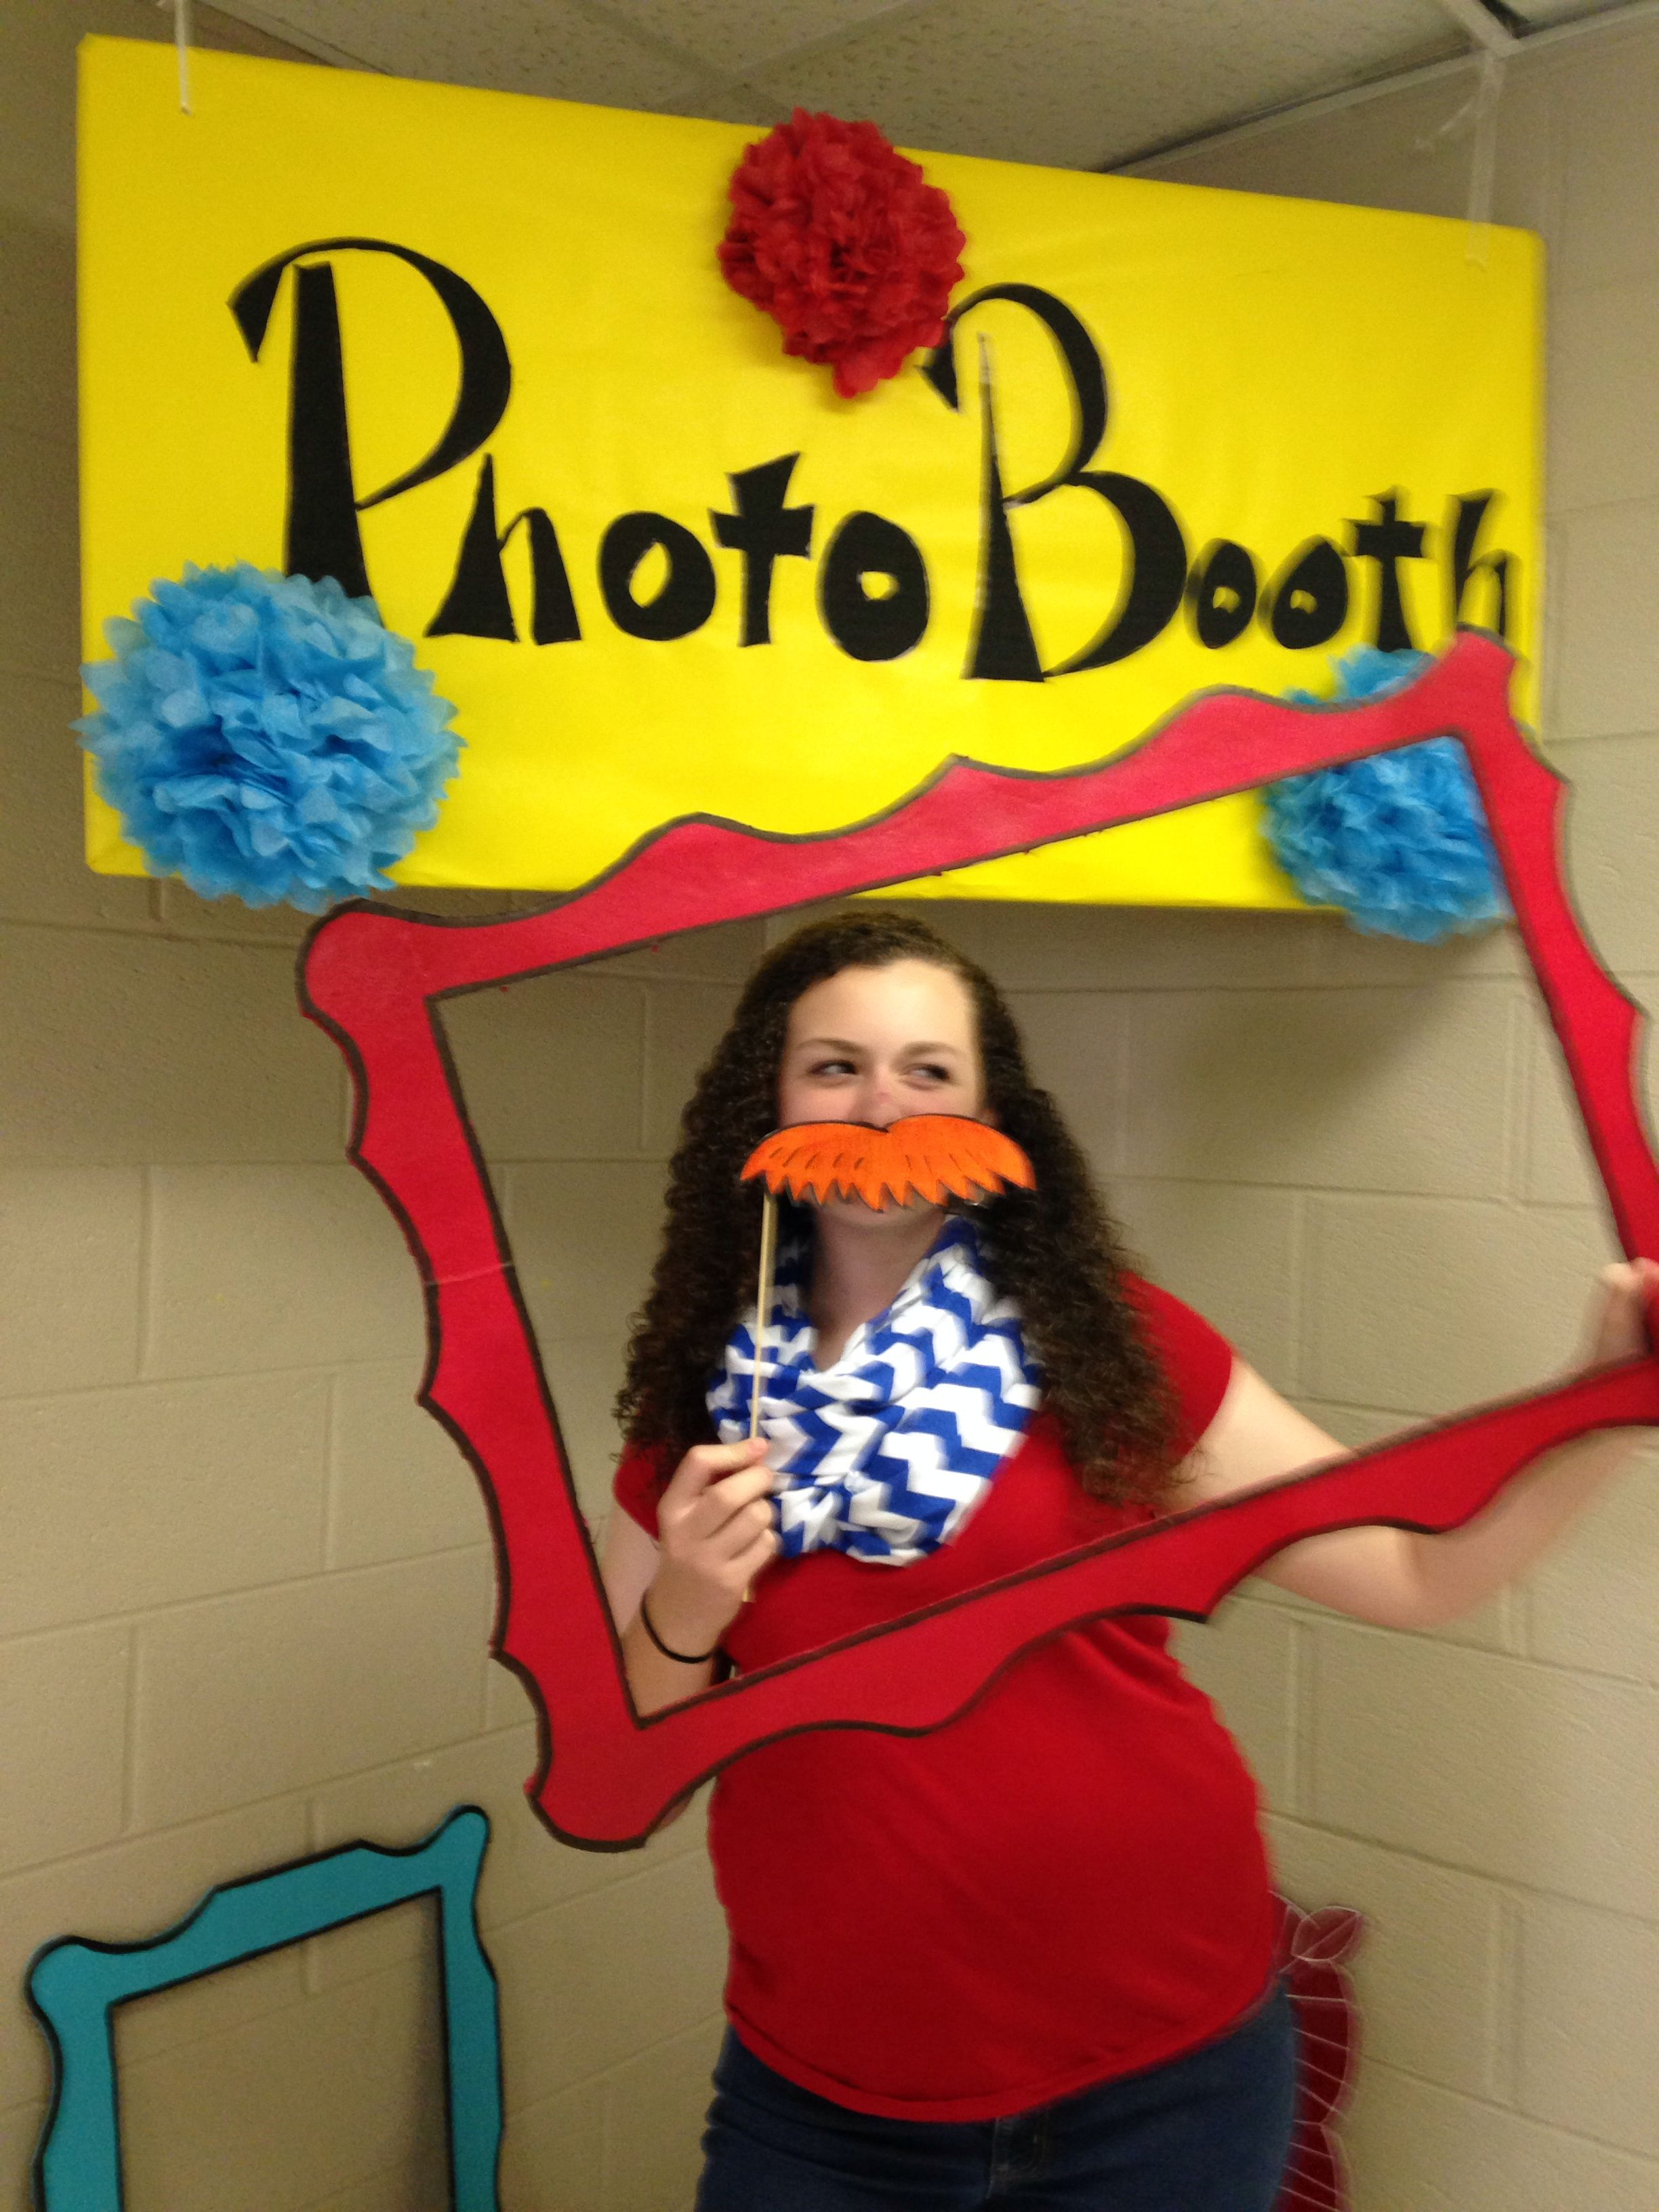 Dr seuss first birthday. Twins. Photo booth. Frames made from foam ...